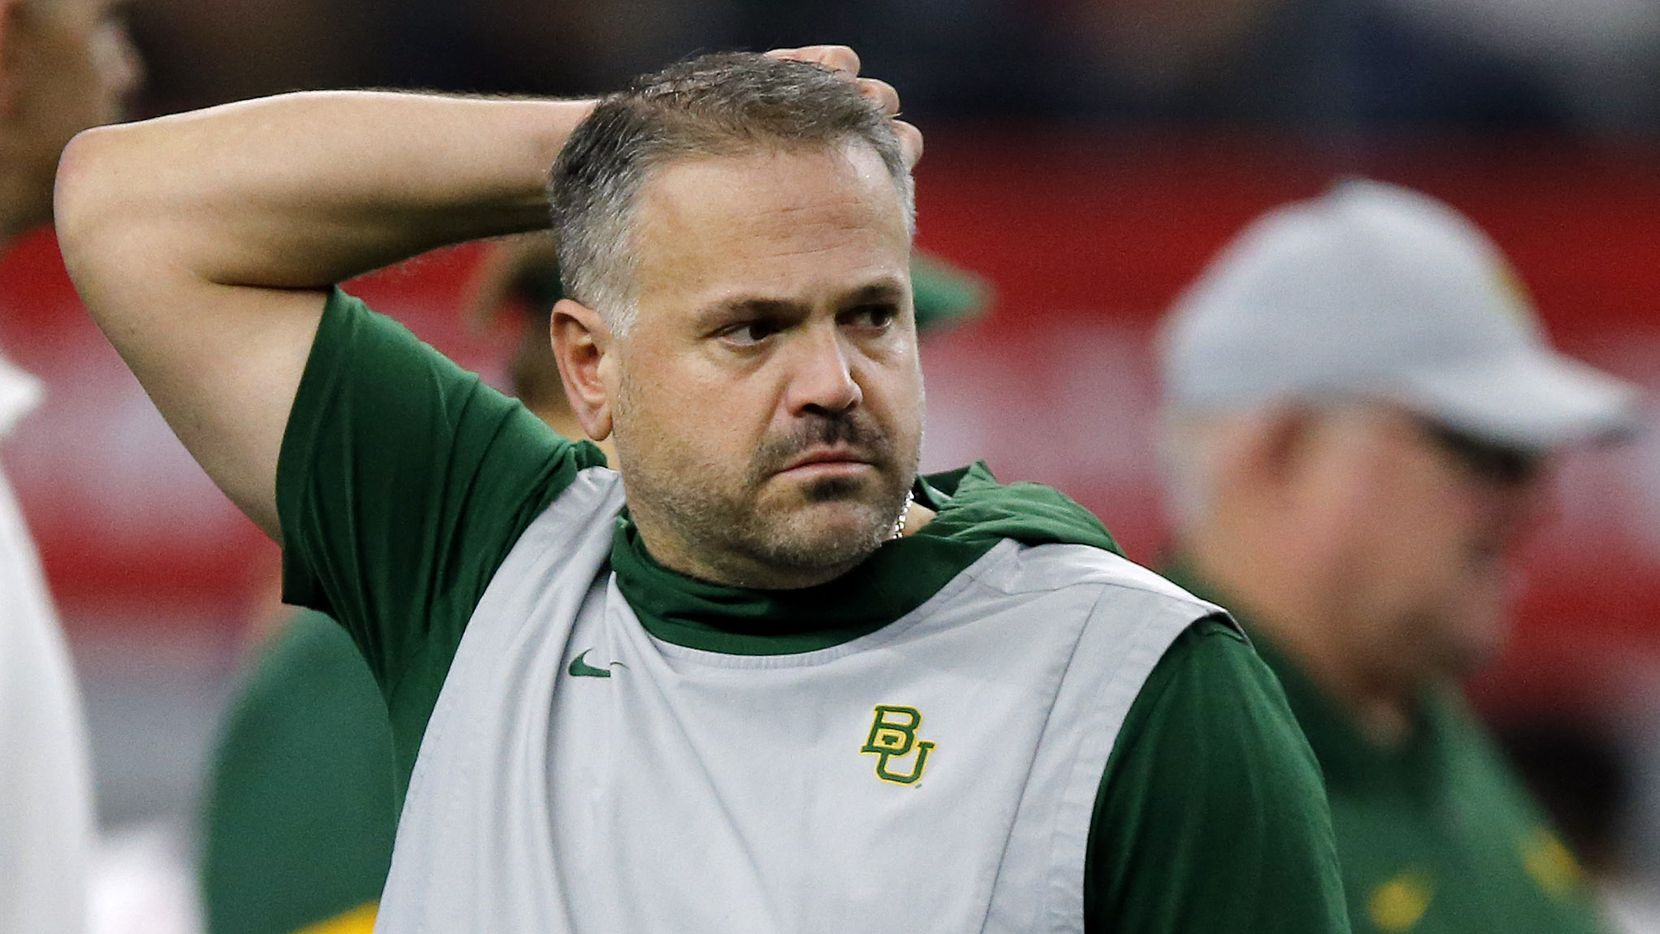 National Reaction To Baylor S Big 12 Title Loss Matt Rhule